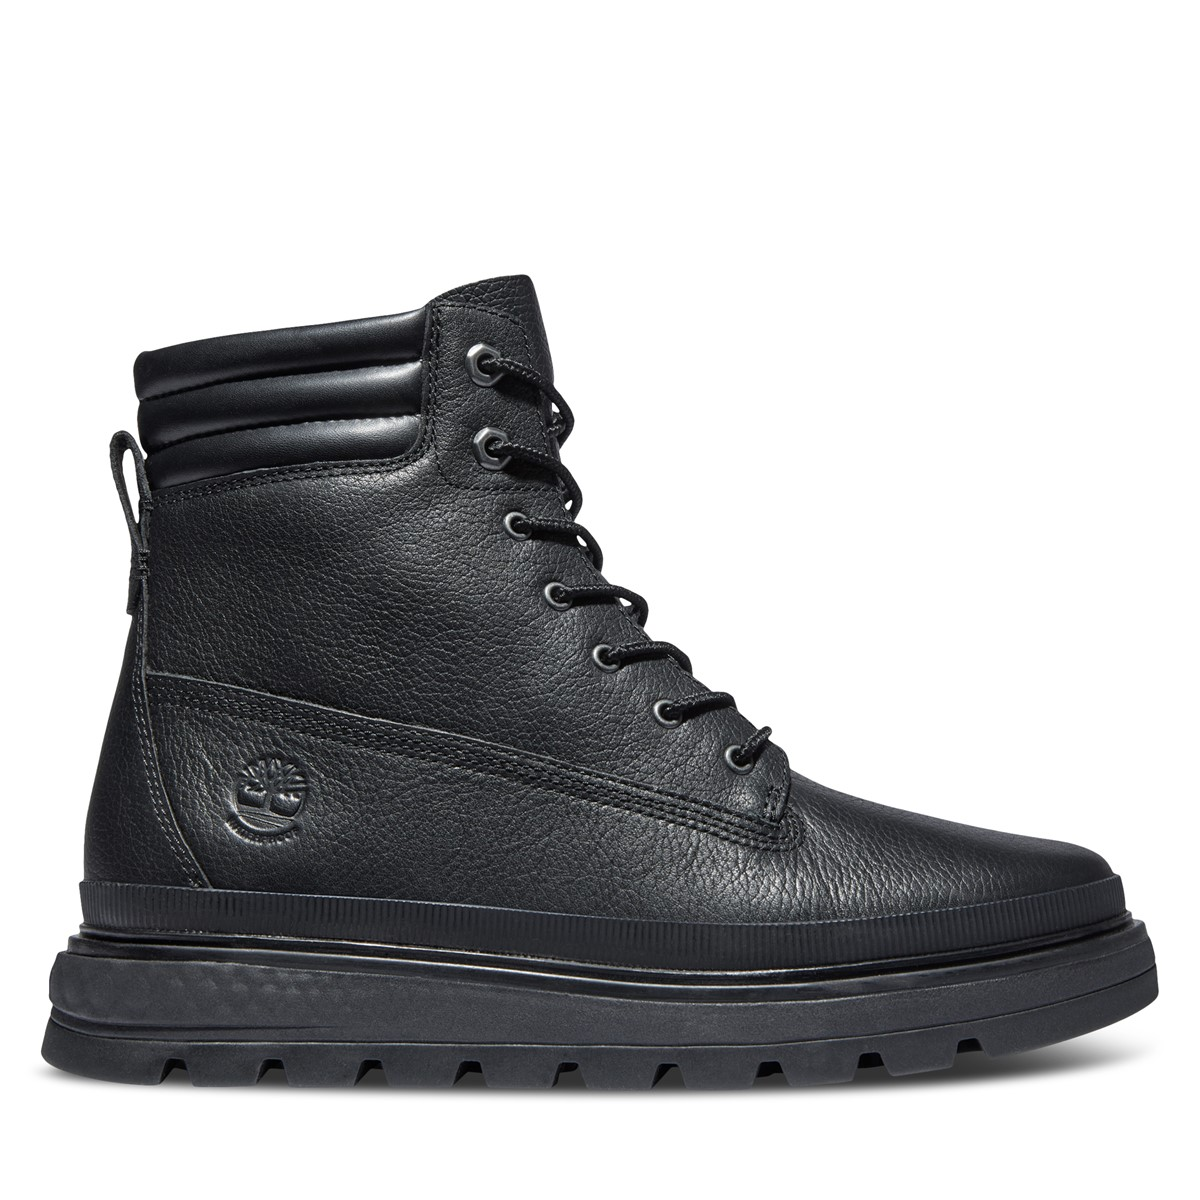 Women's Ray City Lace-up Boots in Black